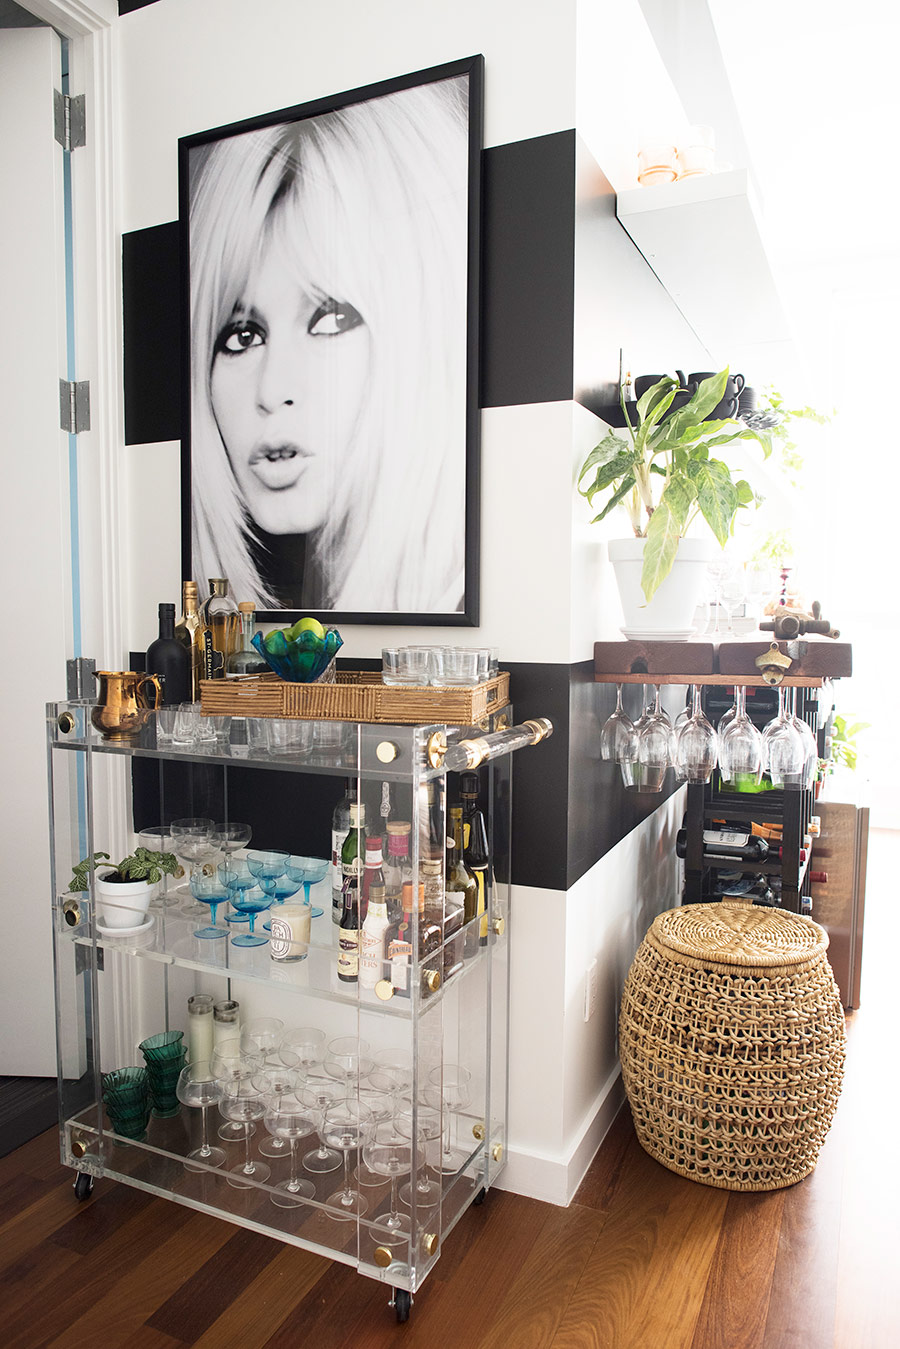 Decked-out bar cart style